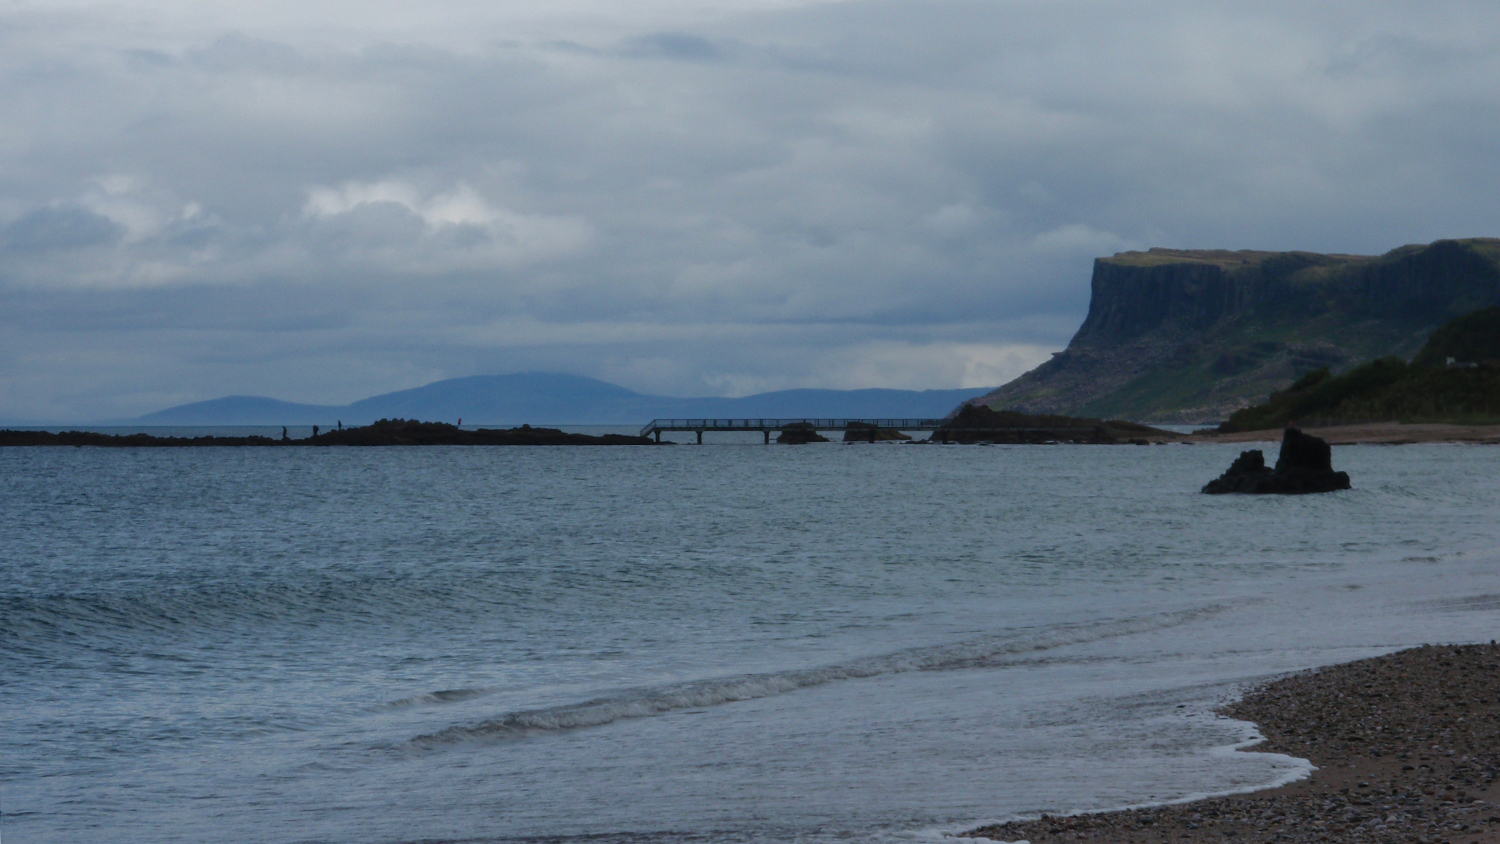 Ballycastle Beach in County Antrim